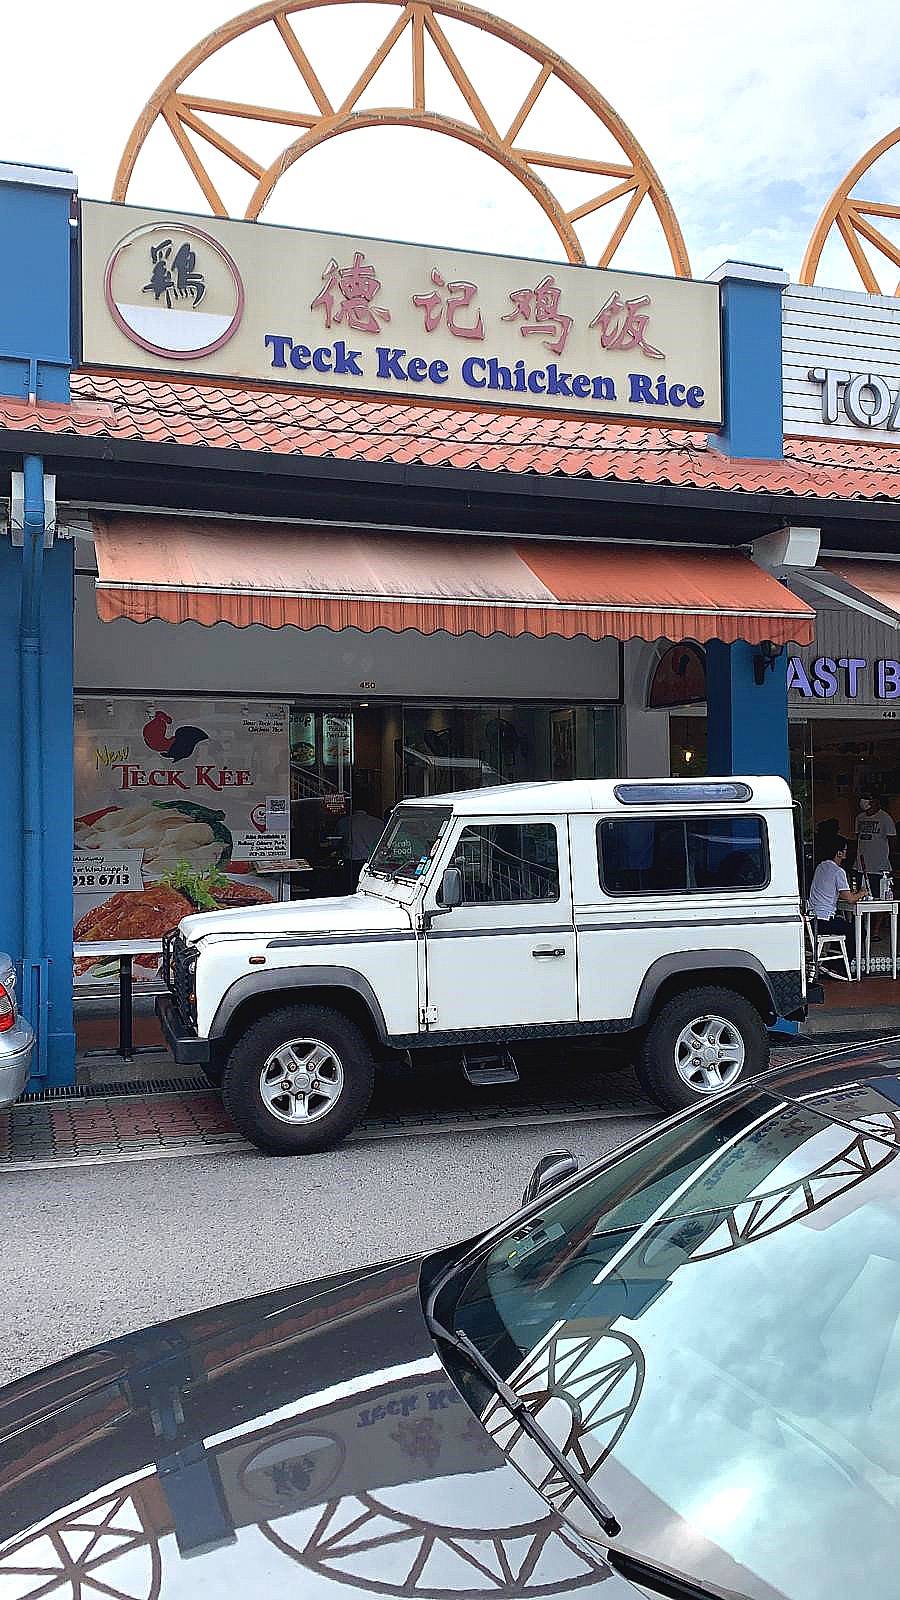 $23 Giant Truffle Chicken Rice Platter With Islandwide Delivery to Feed Your Fam